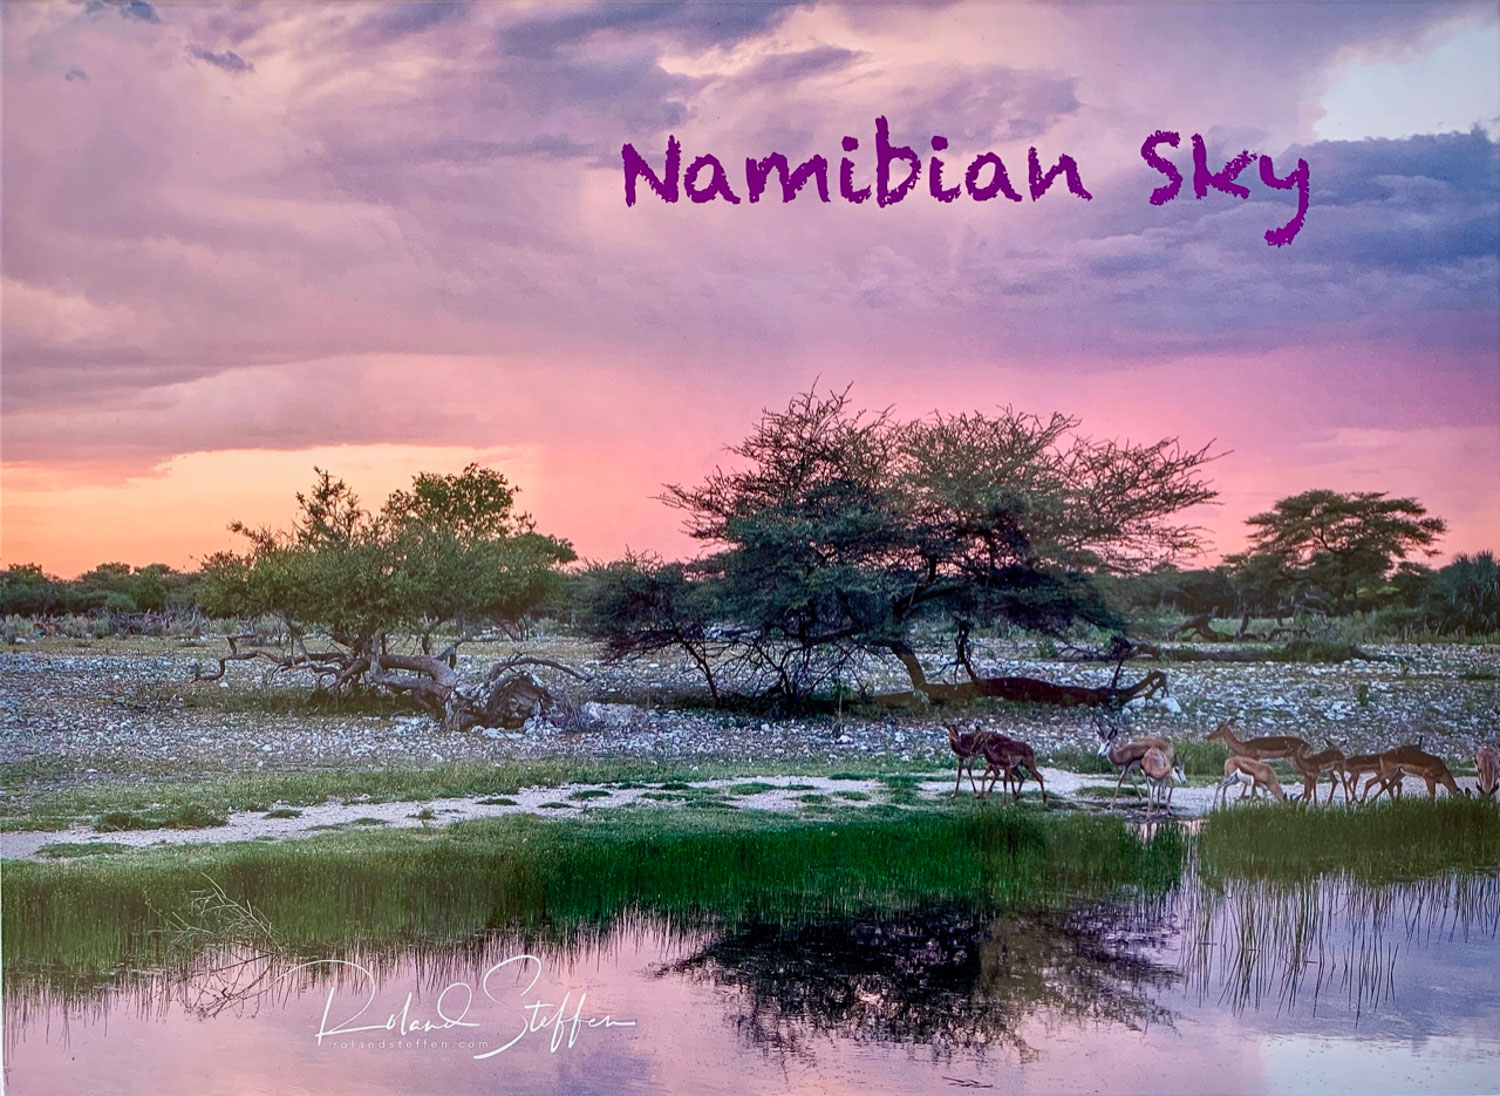 Namibian Sky - 2019 - Pictures of Namibia's landscape.Photographs: Roland Steffen